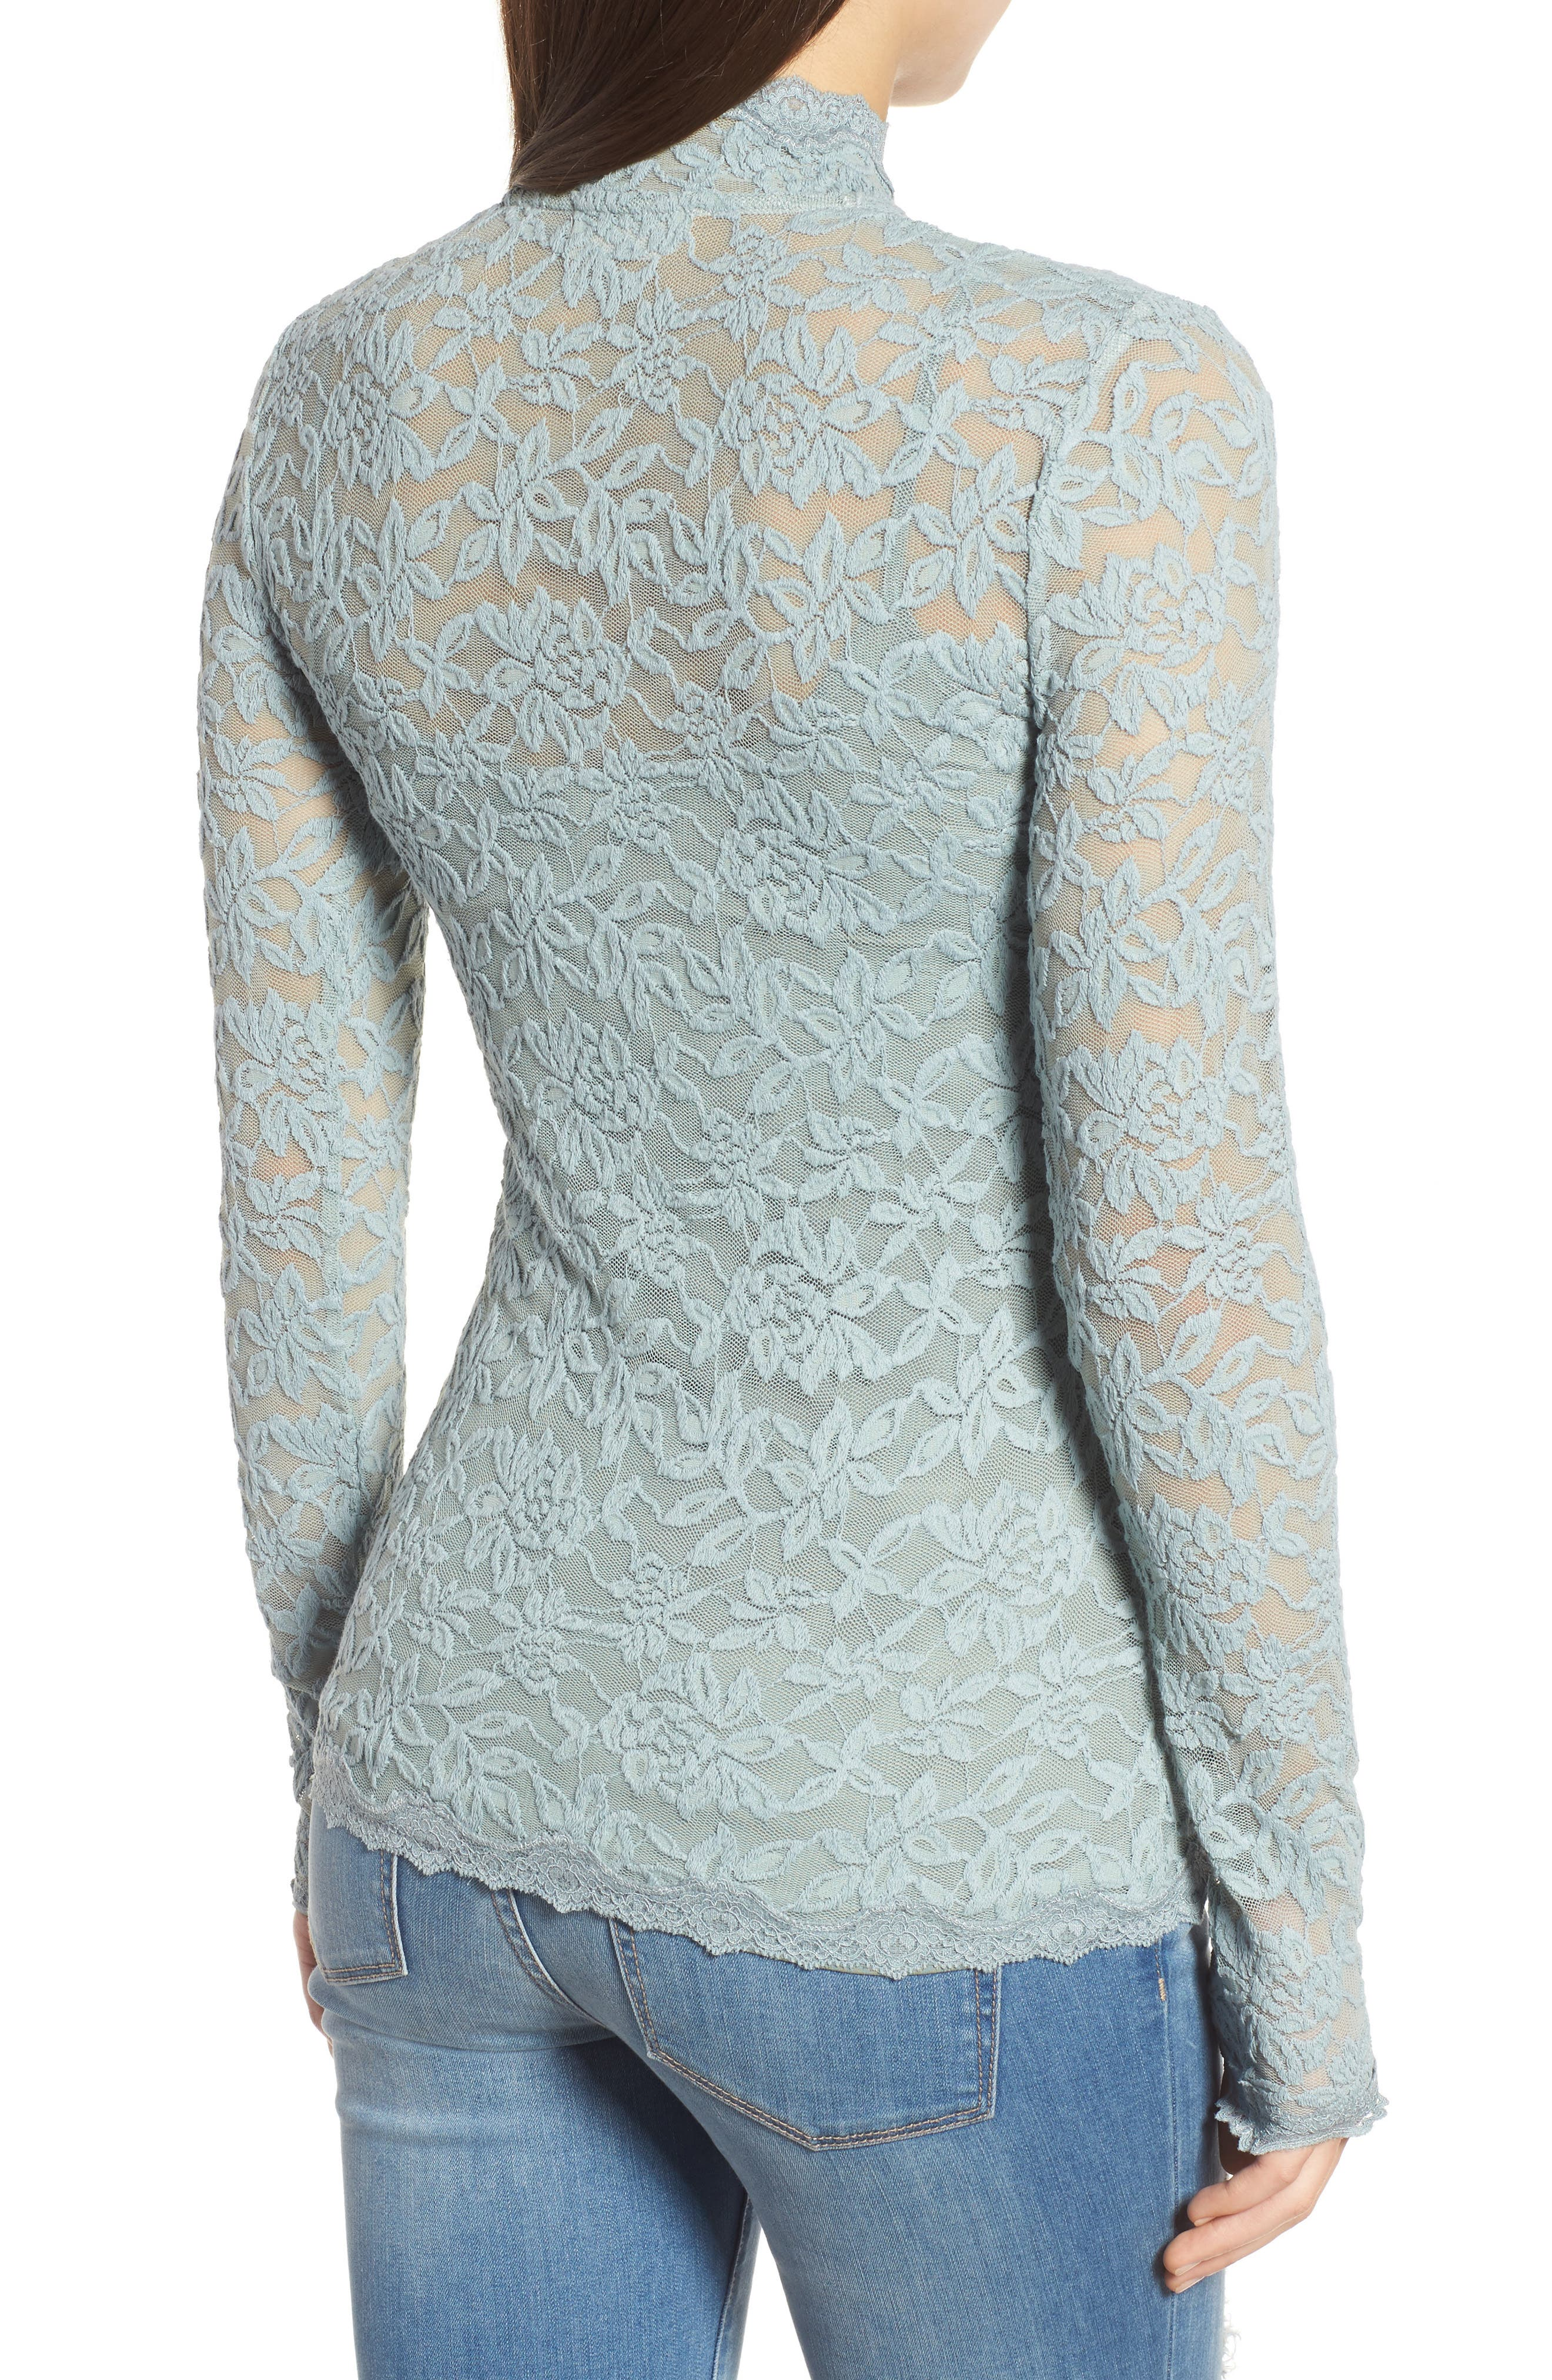 Delicia Long Sleeve Top,                             Alternate thumbnail 2, color,                             022